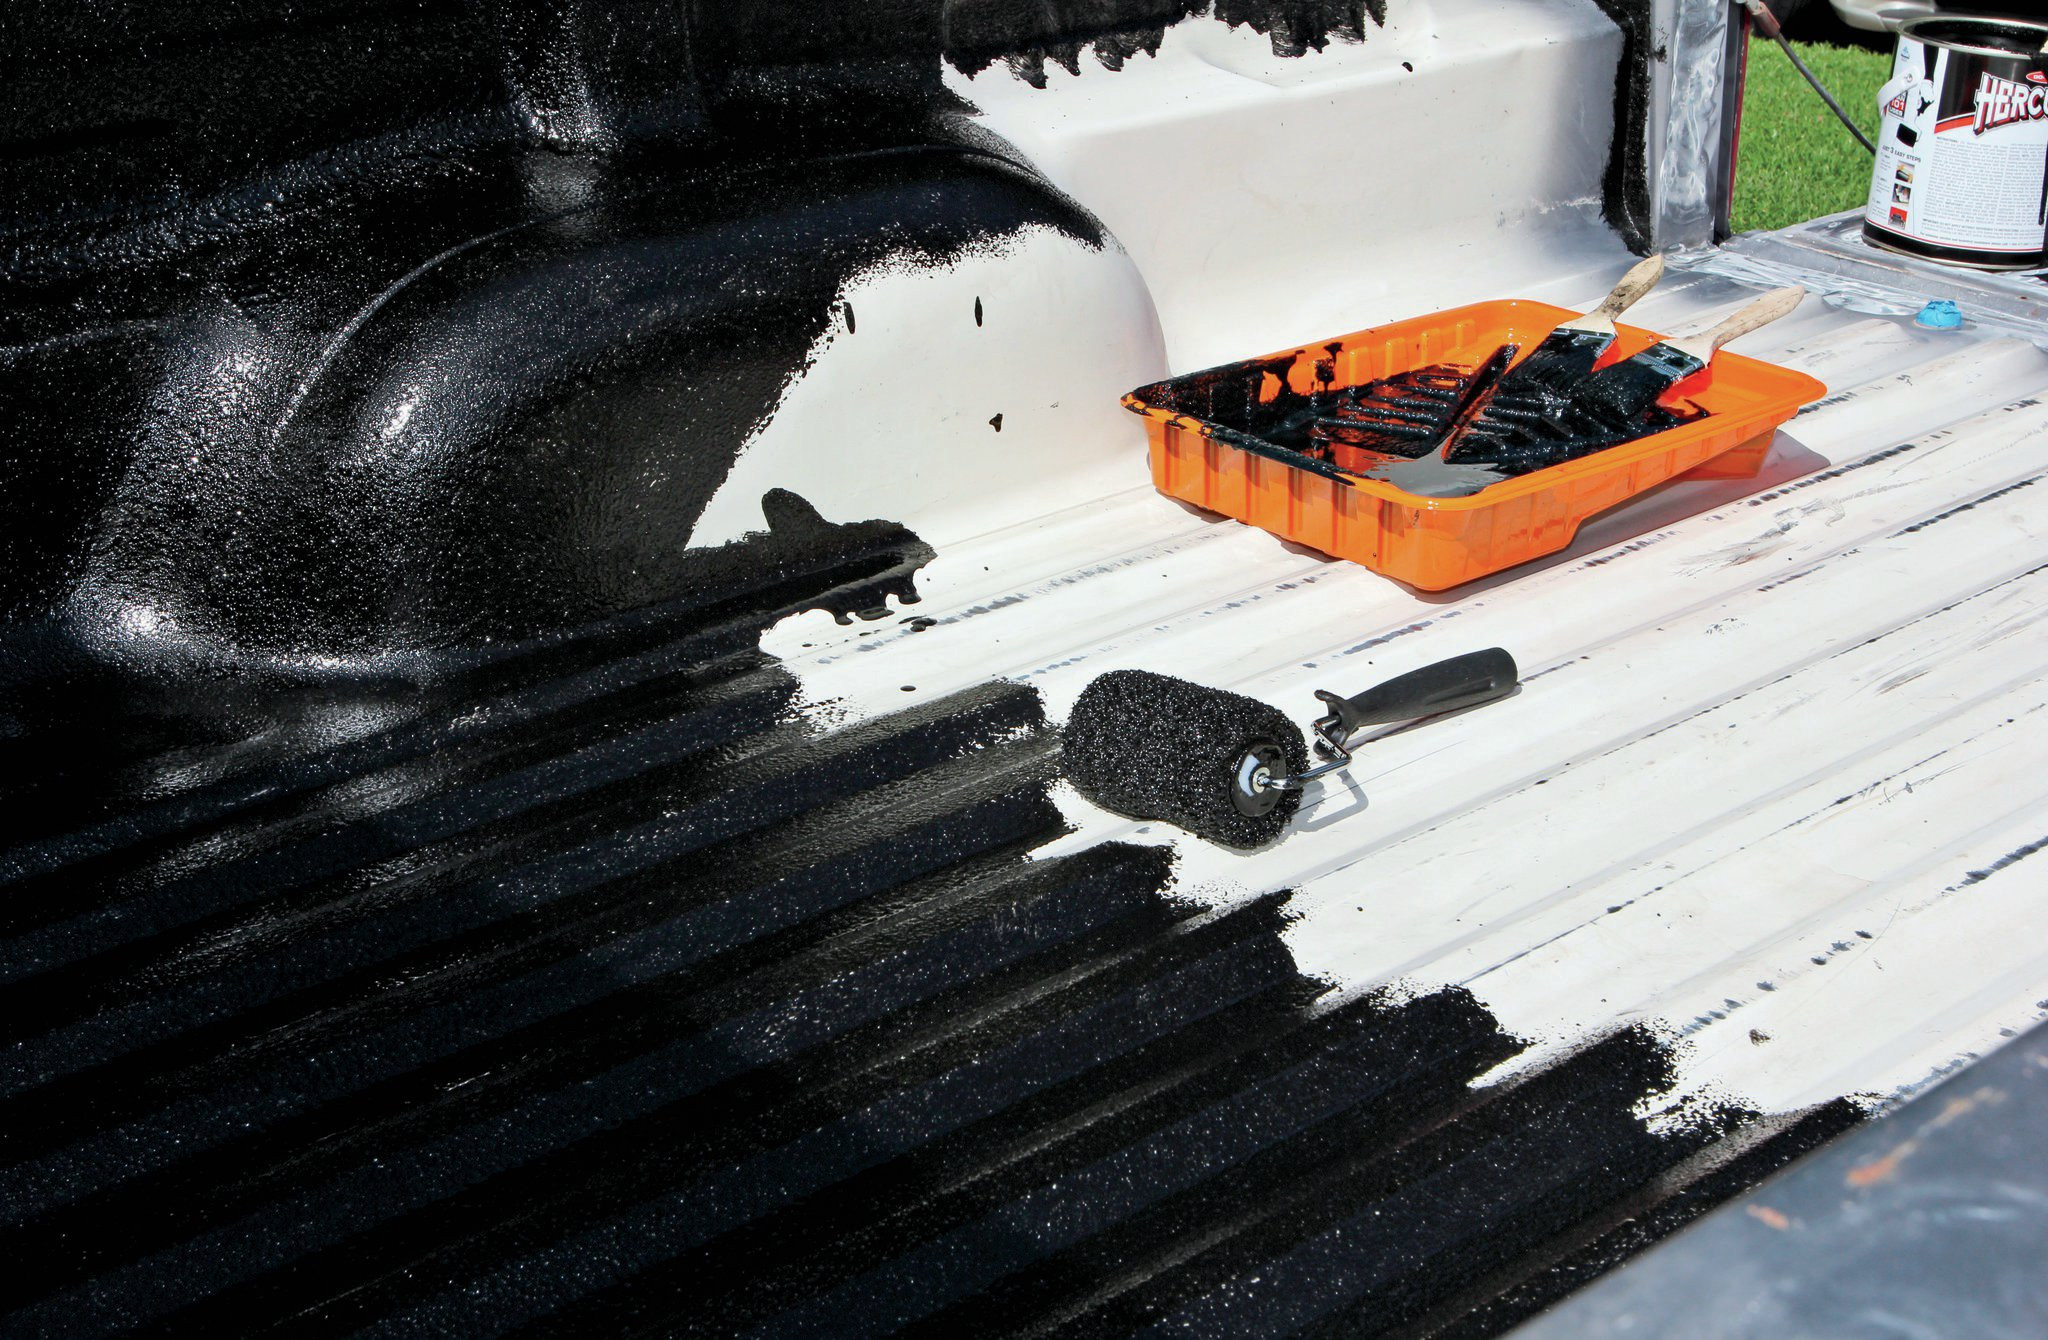 Best ideas about Best DIY Bed Liner . Save or Pin Herculiner DIY Roll on Bedliner Kit How to & Image Now.